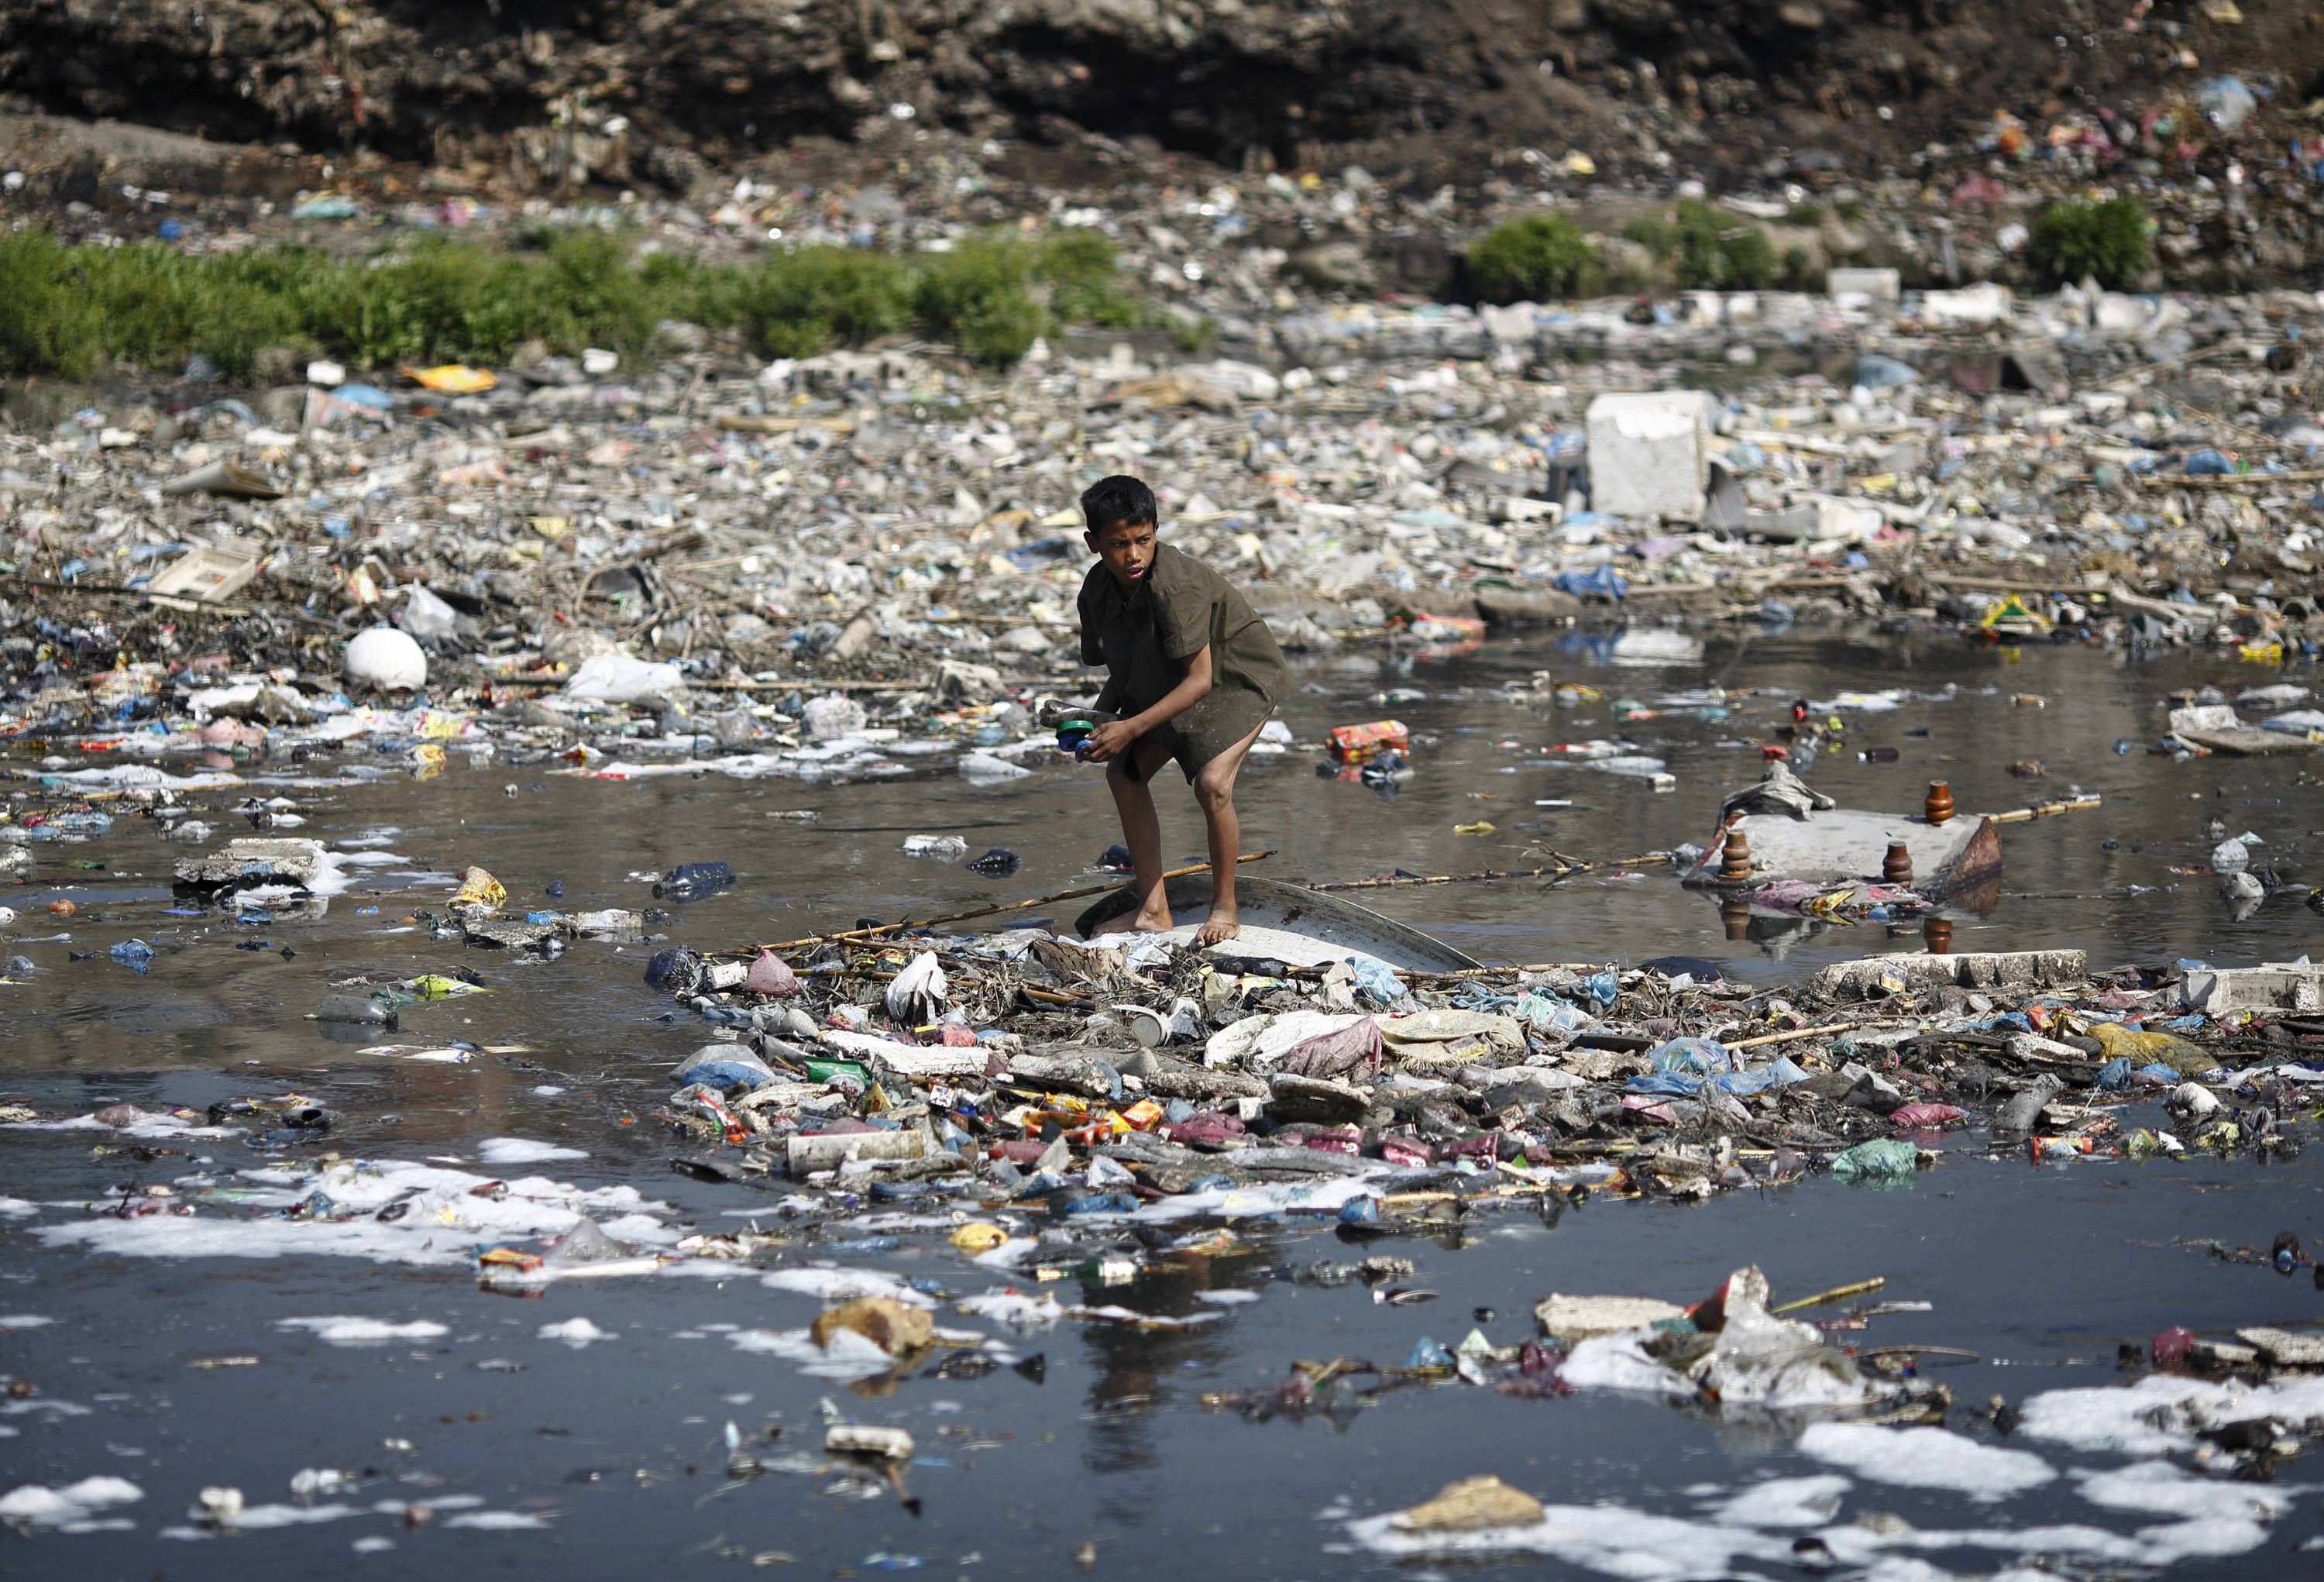 A boy crouches on an island of plastic.